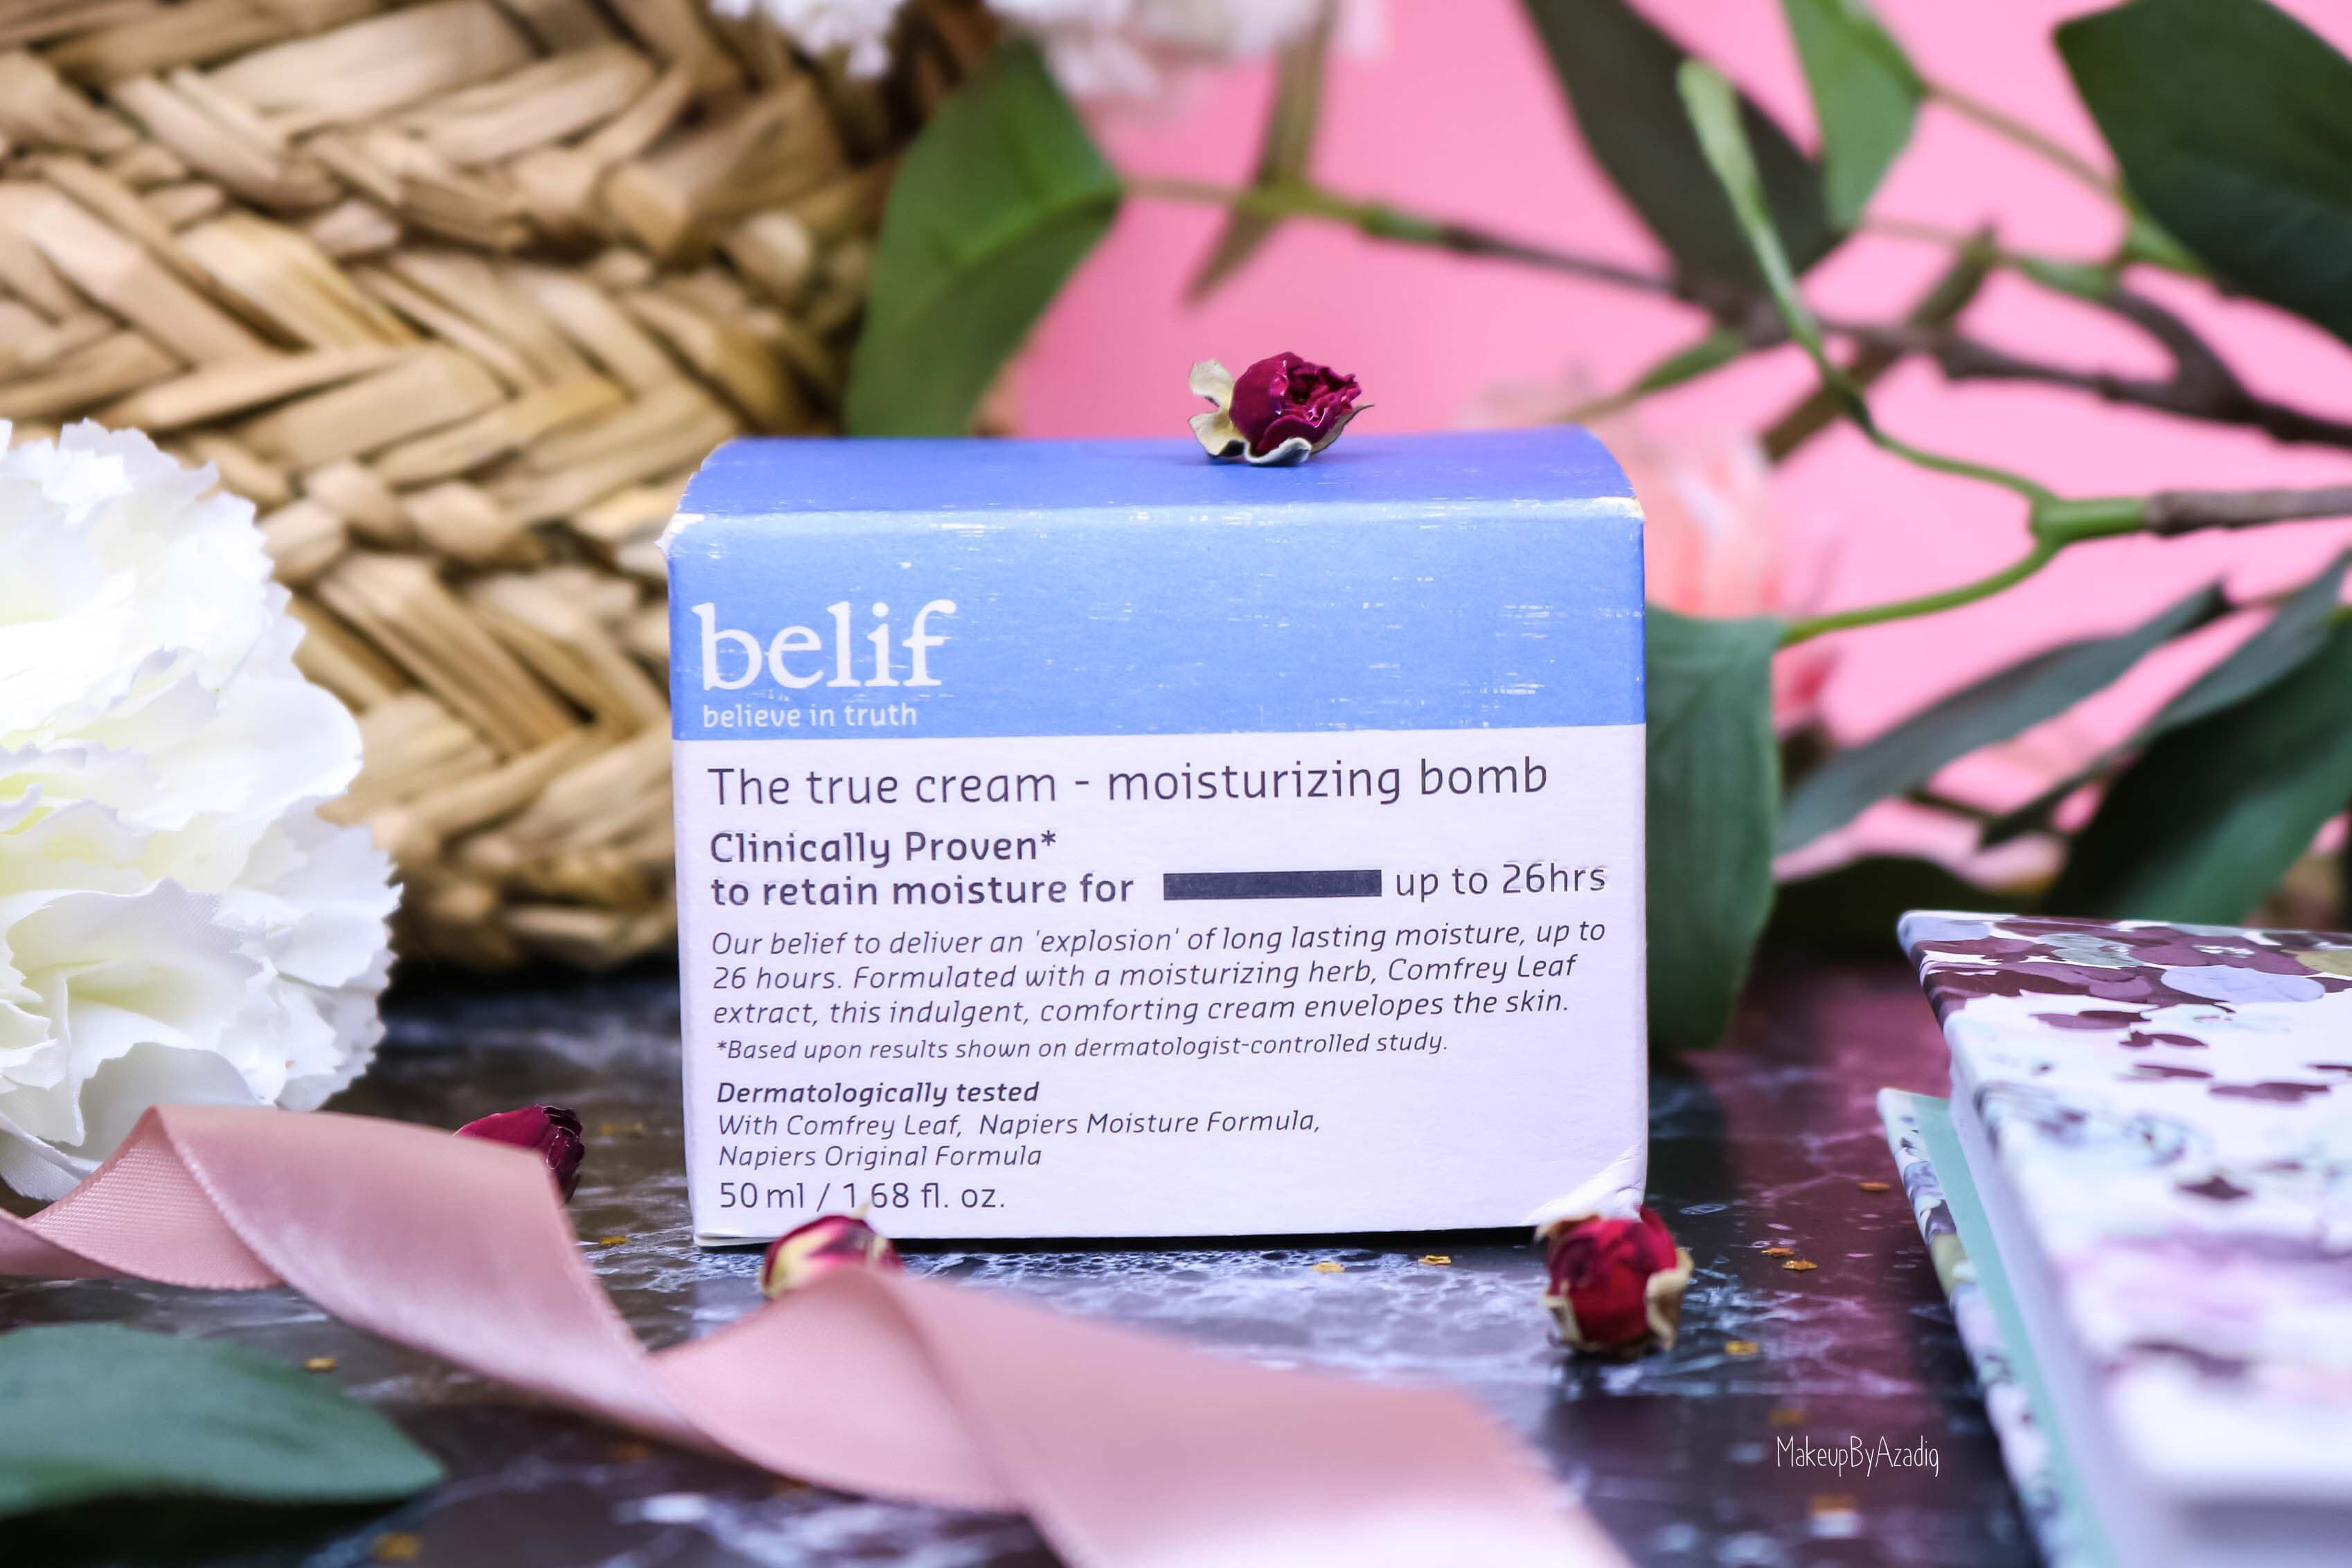 revue-review-creme-soin-belif-the-true-cream-bomb-avis-prix-sephora-france-makeupbyazadig-hydratant-visage-moisturizing